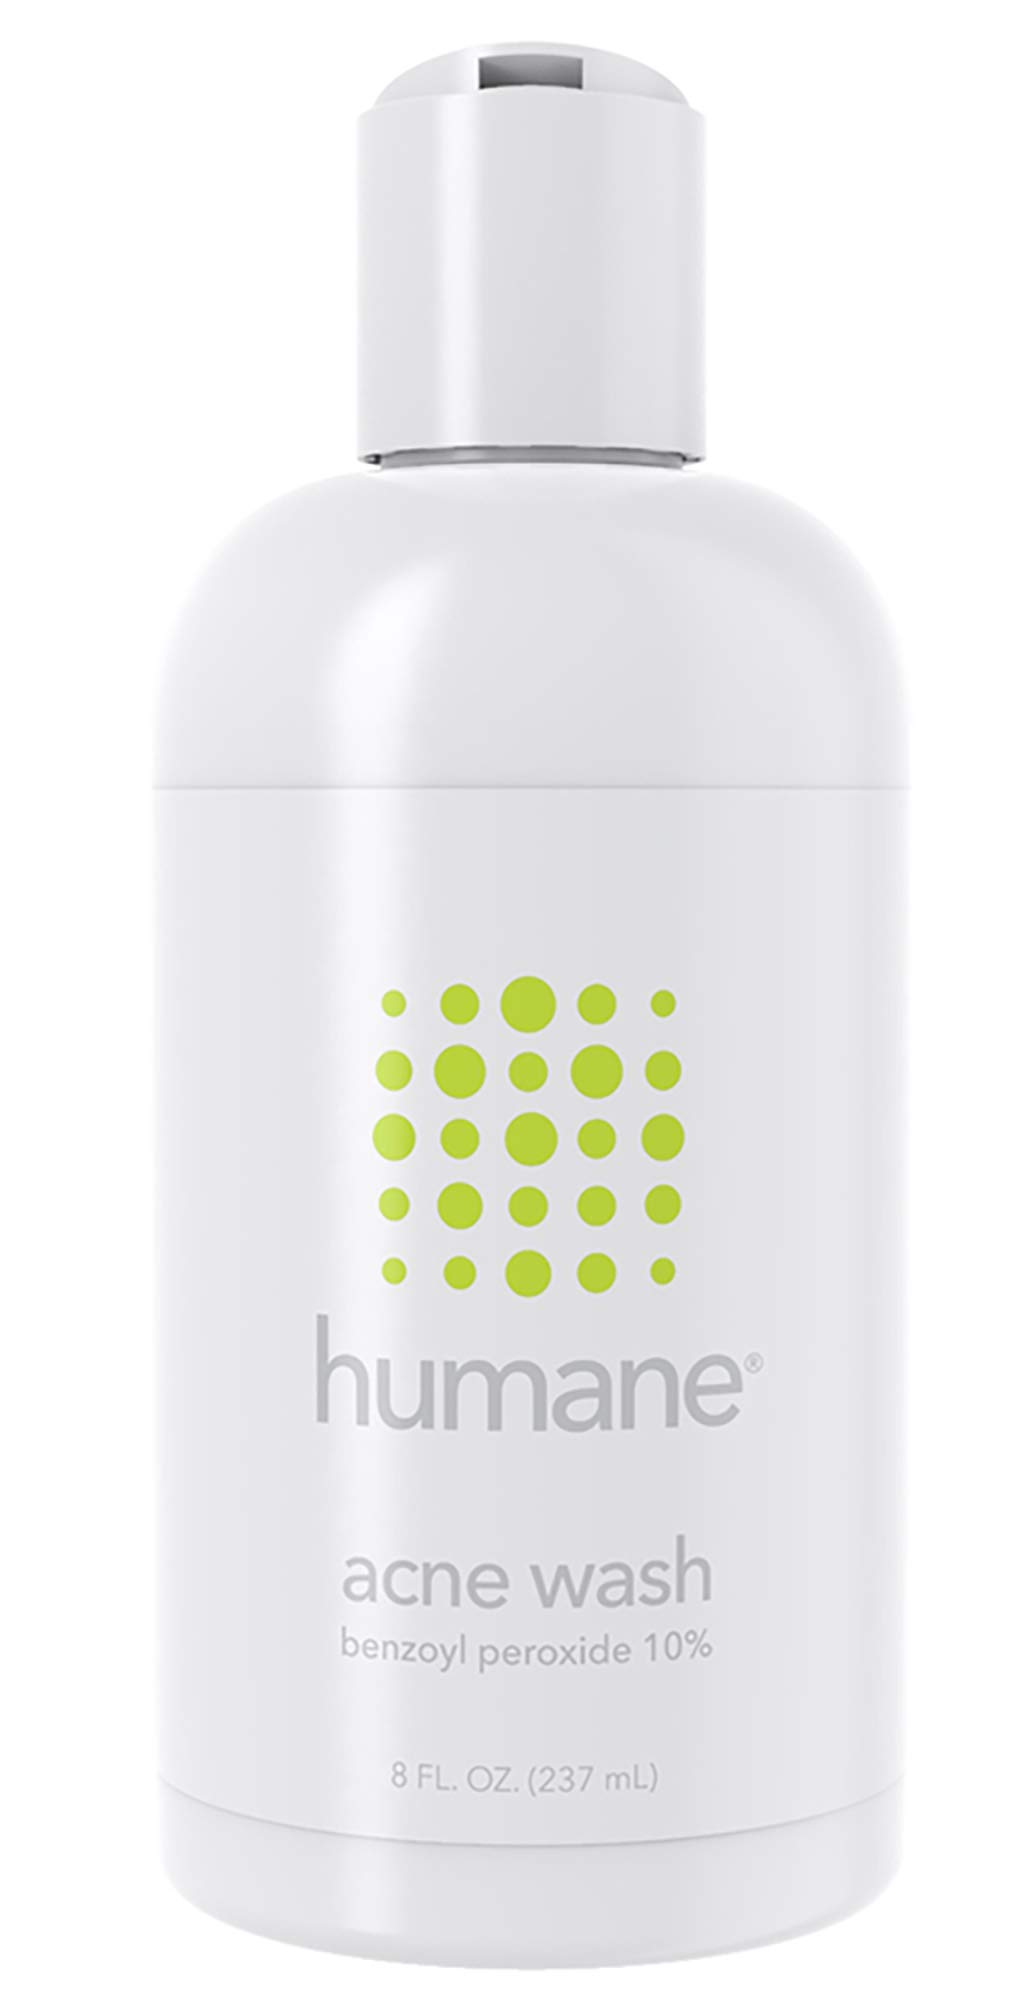 Humane Benzoyl Peroxide 10% Acne Treatment Body & Face Wash, 8 Ounce by humane (Image #1)